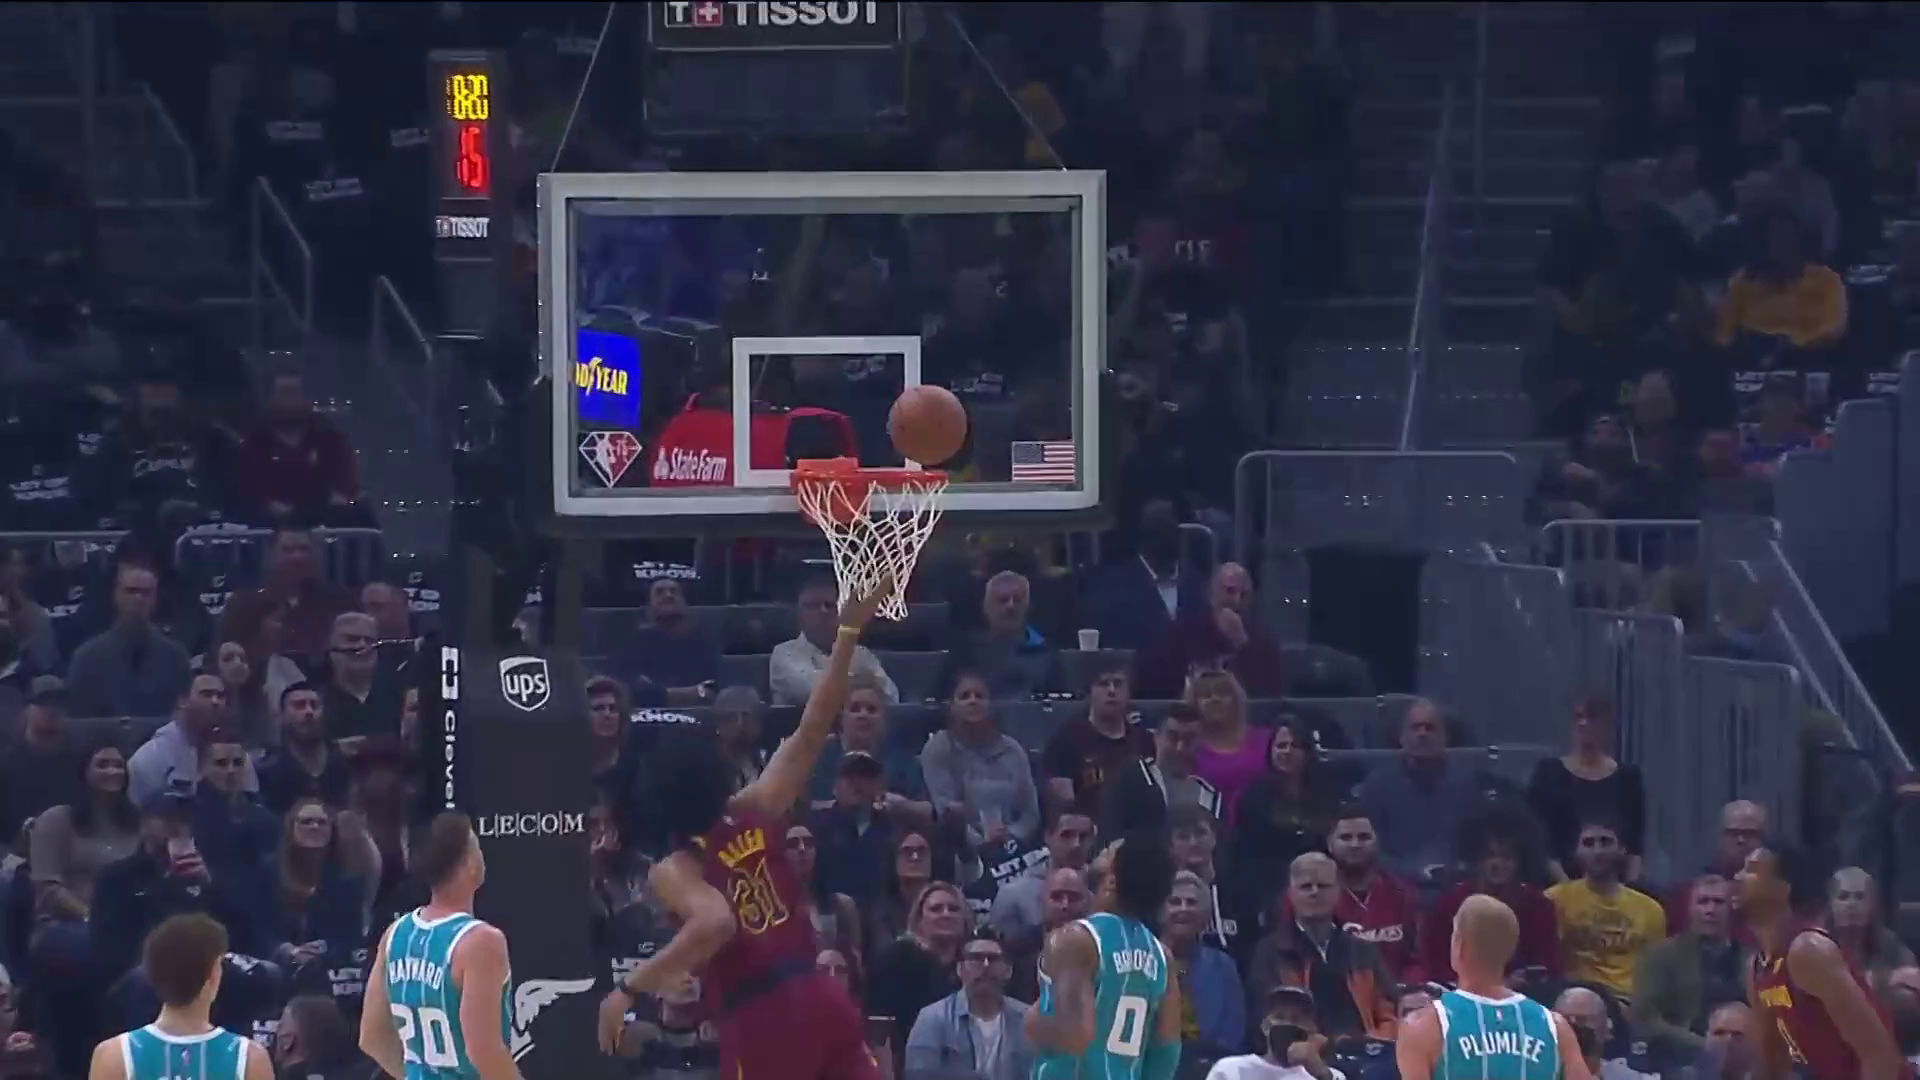 Allen Drives Down the Middle for Layup